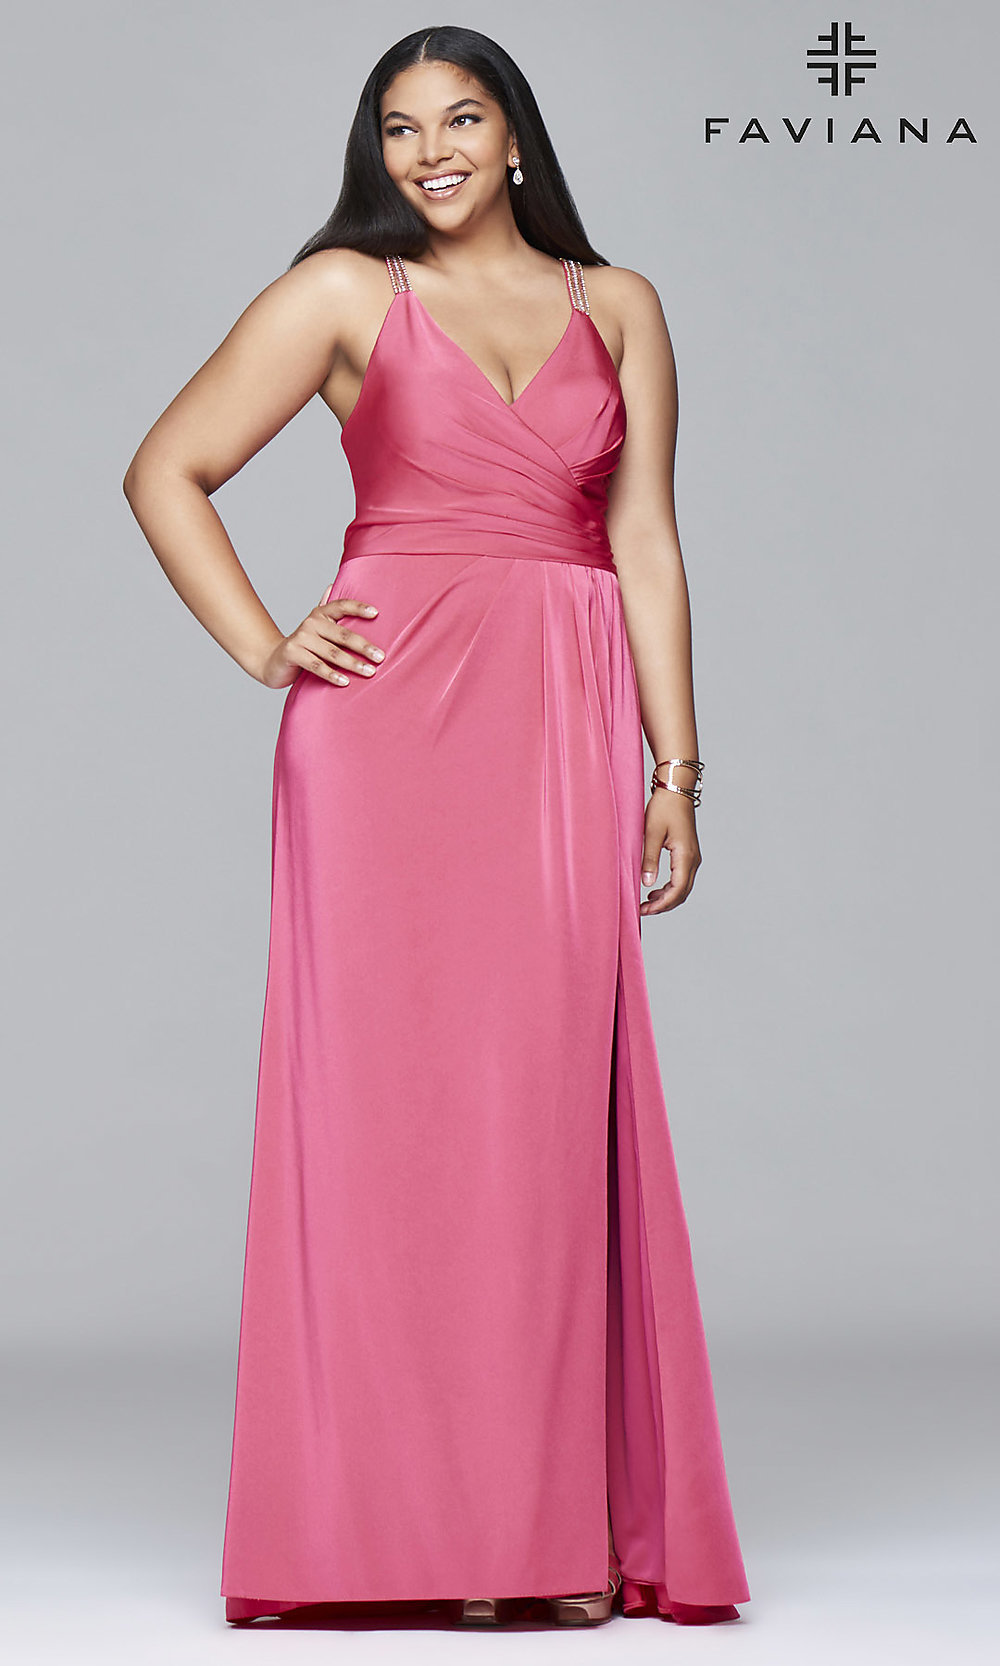 Pink plus size formal dresses - Fashion dresses